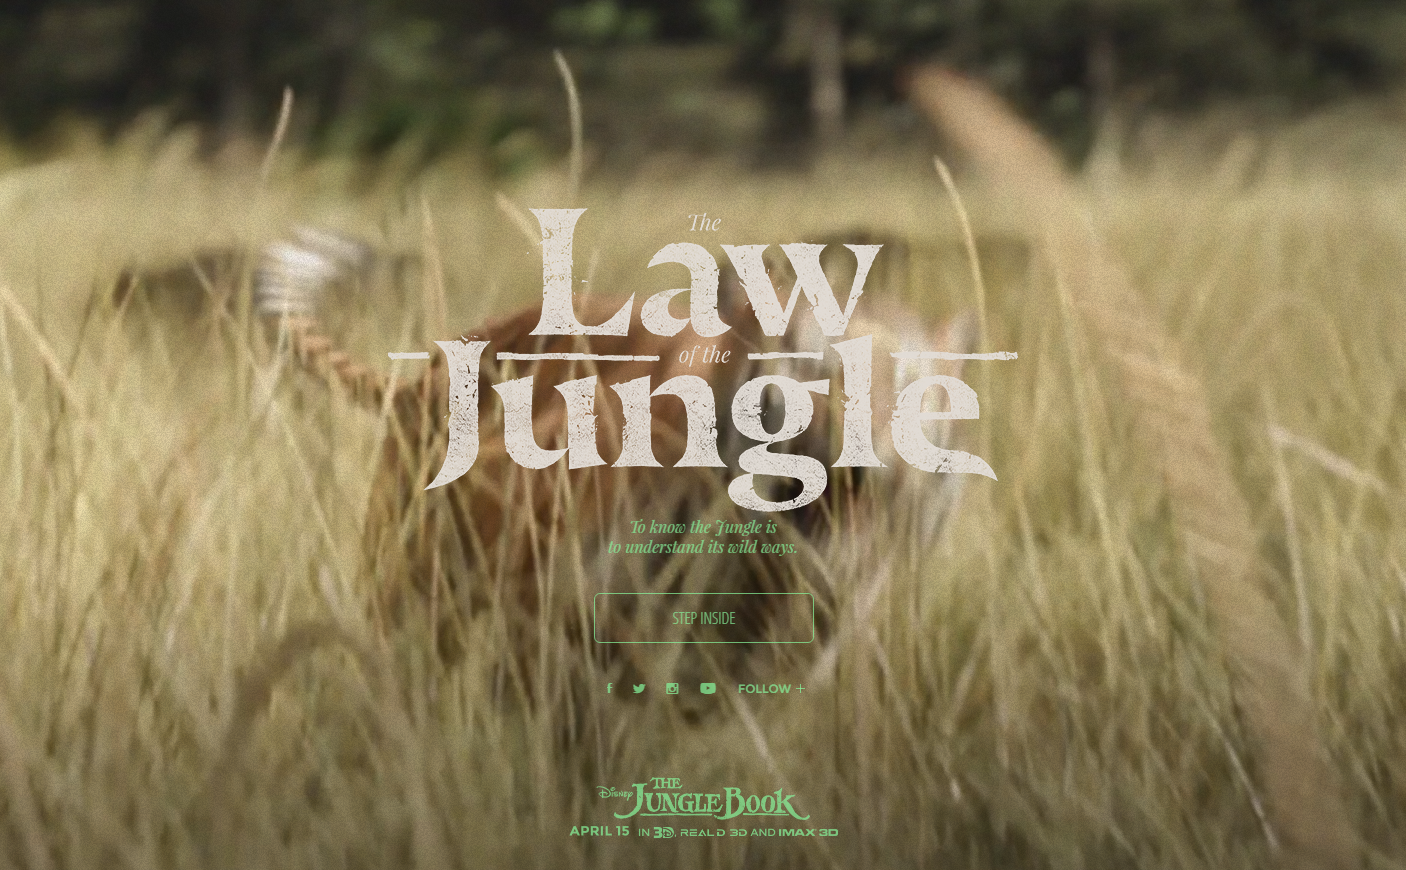 The Law of the Jungle site